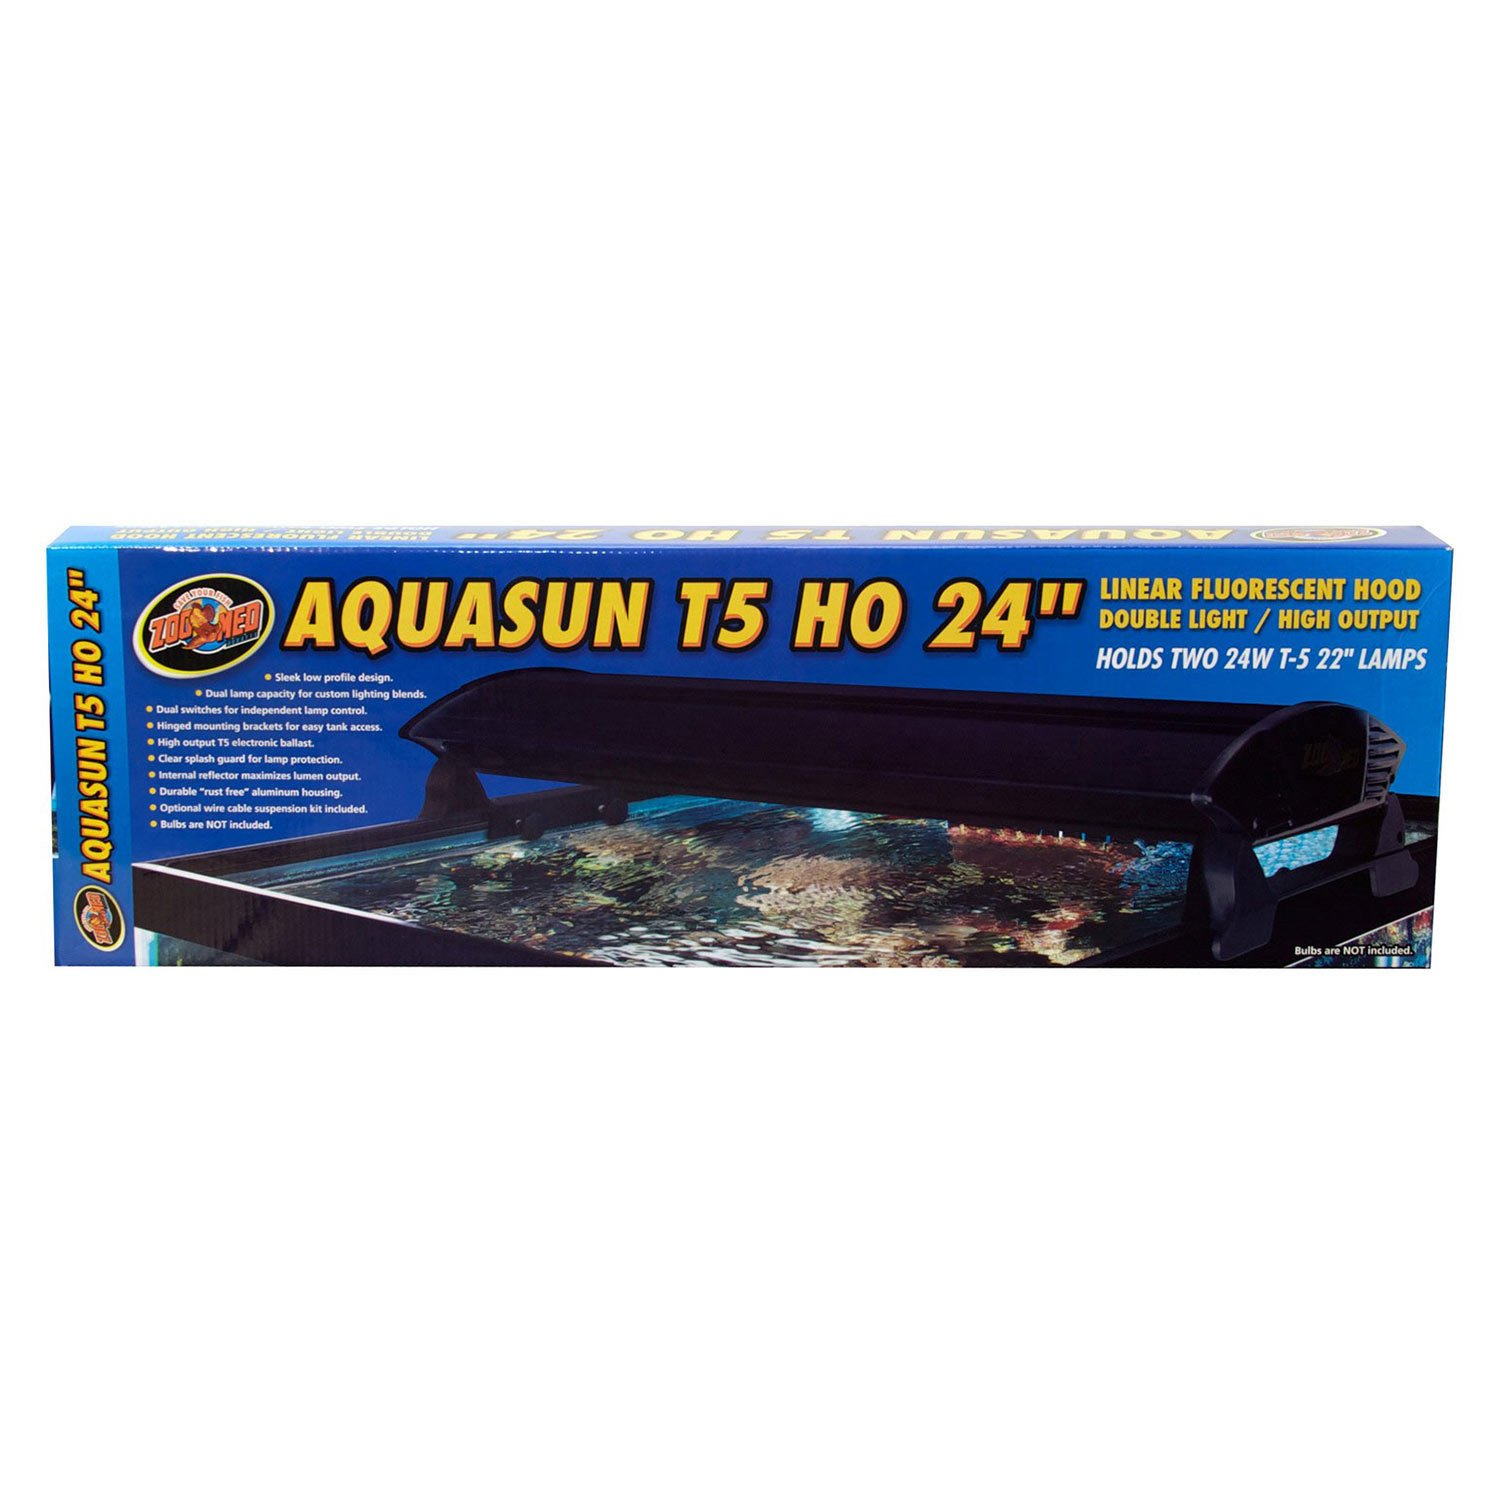 "Zoo Med AquaSun T-5 HO Double Light Linear Fluorescent Hood, 24"" Length"